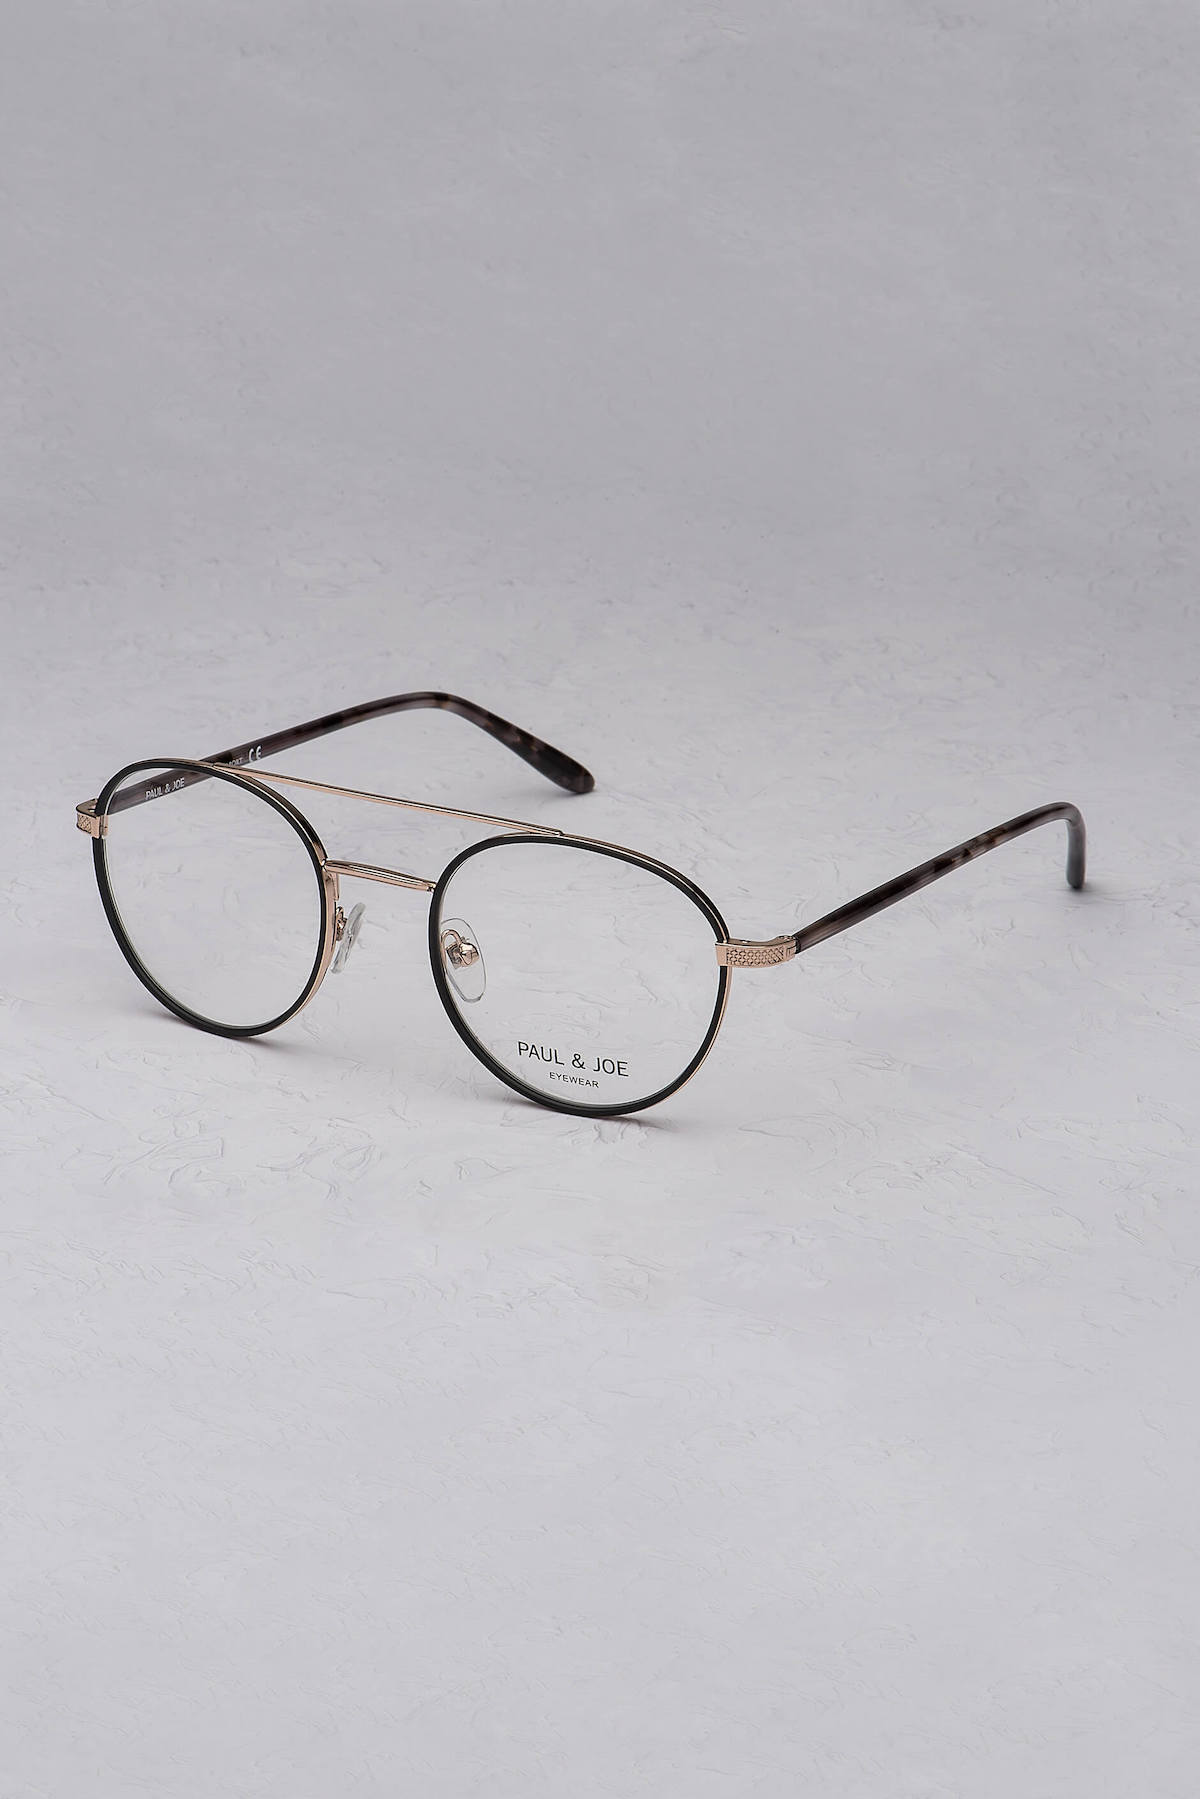 36948f0102d Lunette de vue Paul   Joe - Java02 Aviator - Optic Duroc